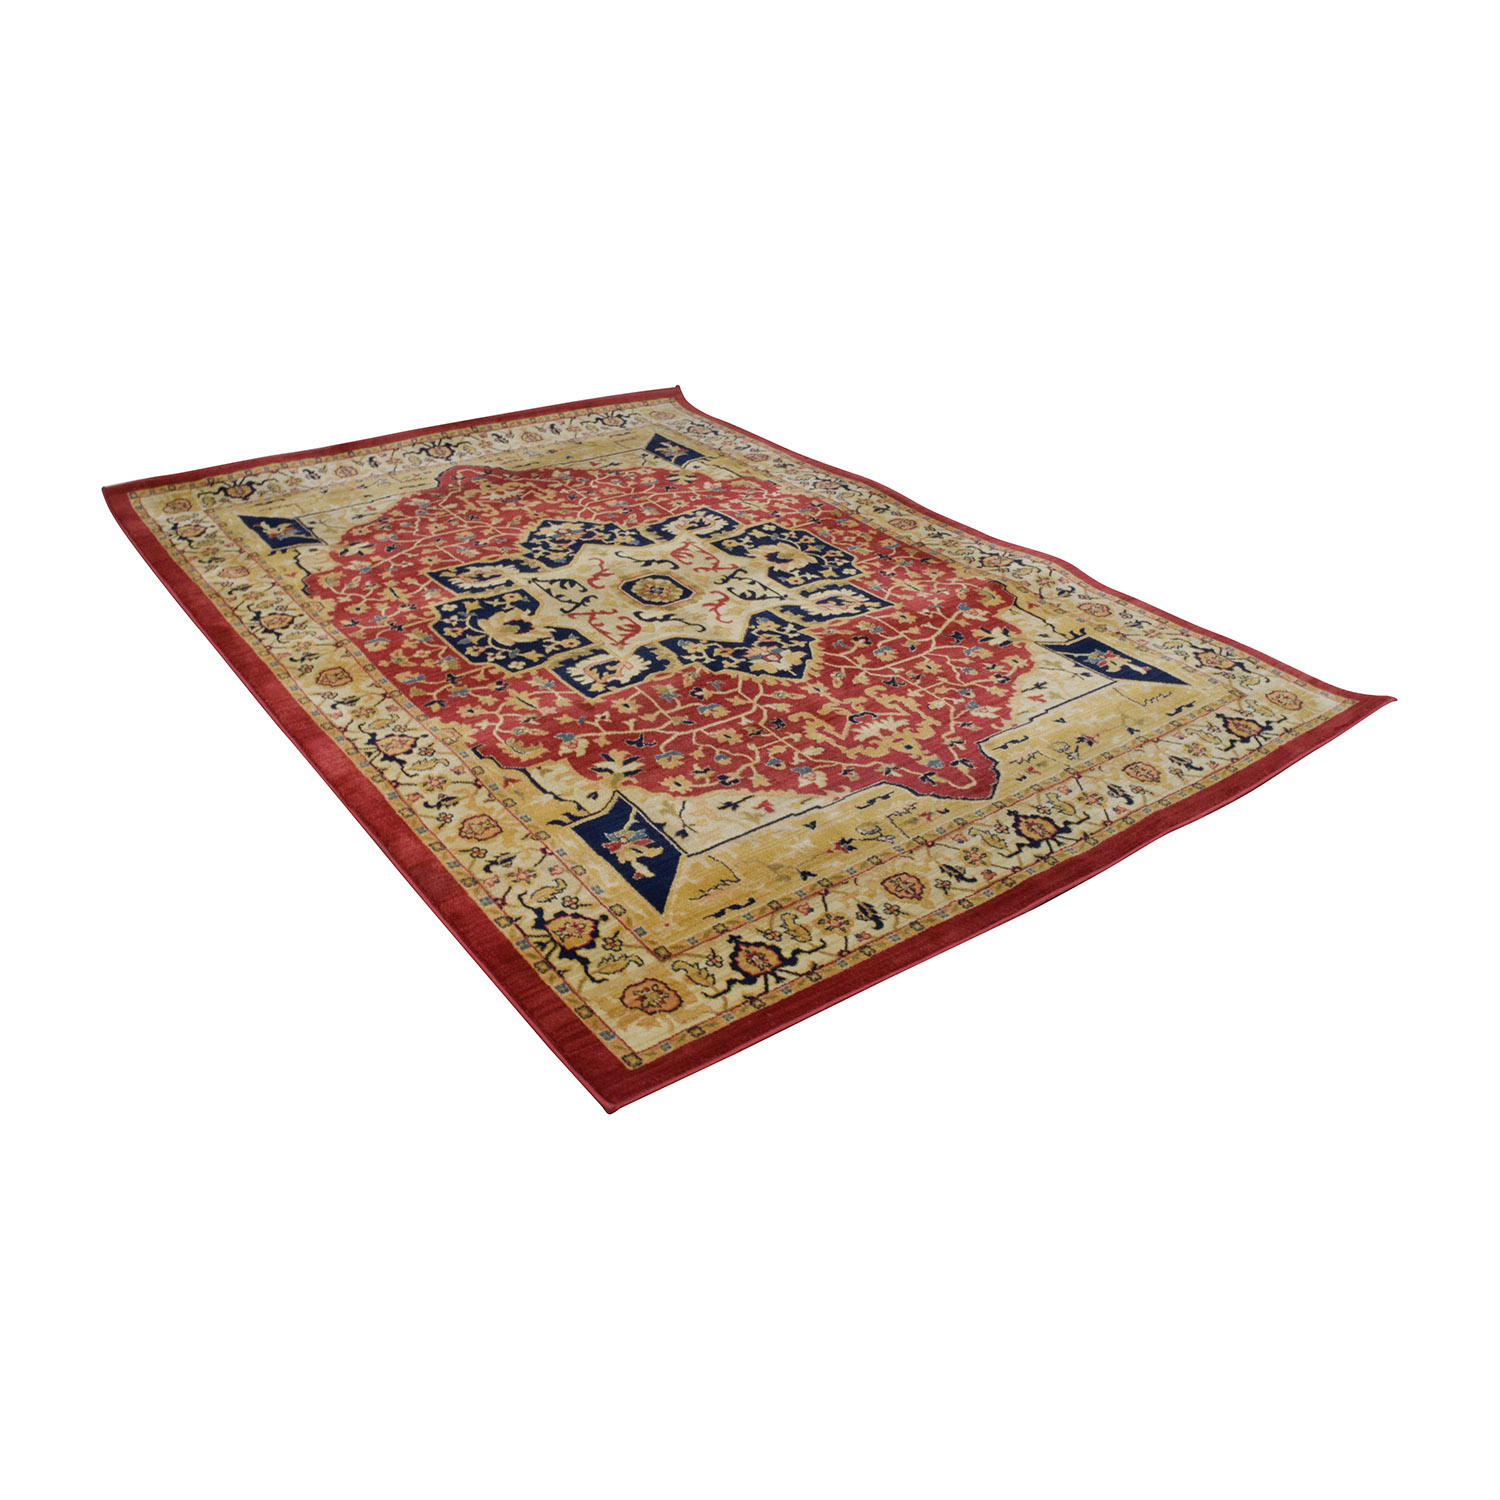 shop Safavieh Austin Red, Beige and Blue Area Rug Safavieh Decor